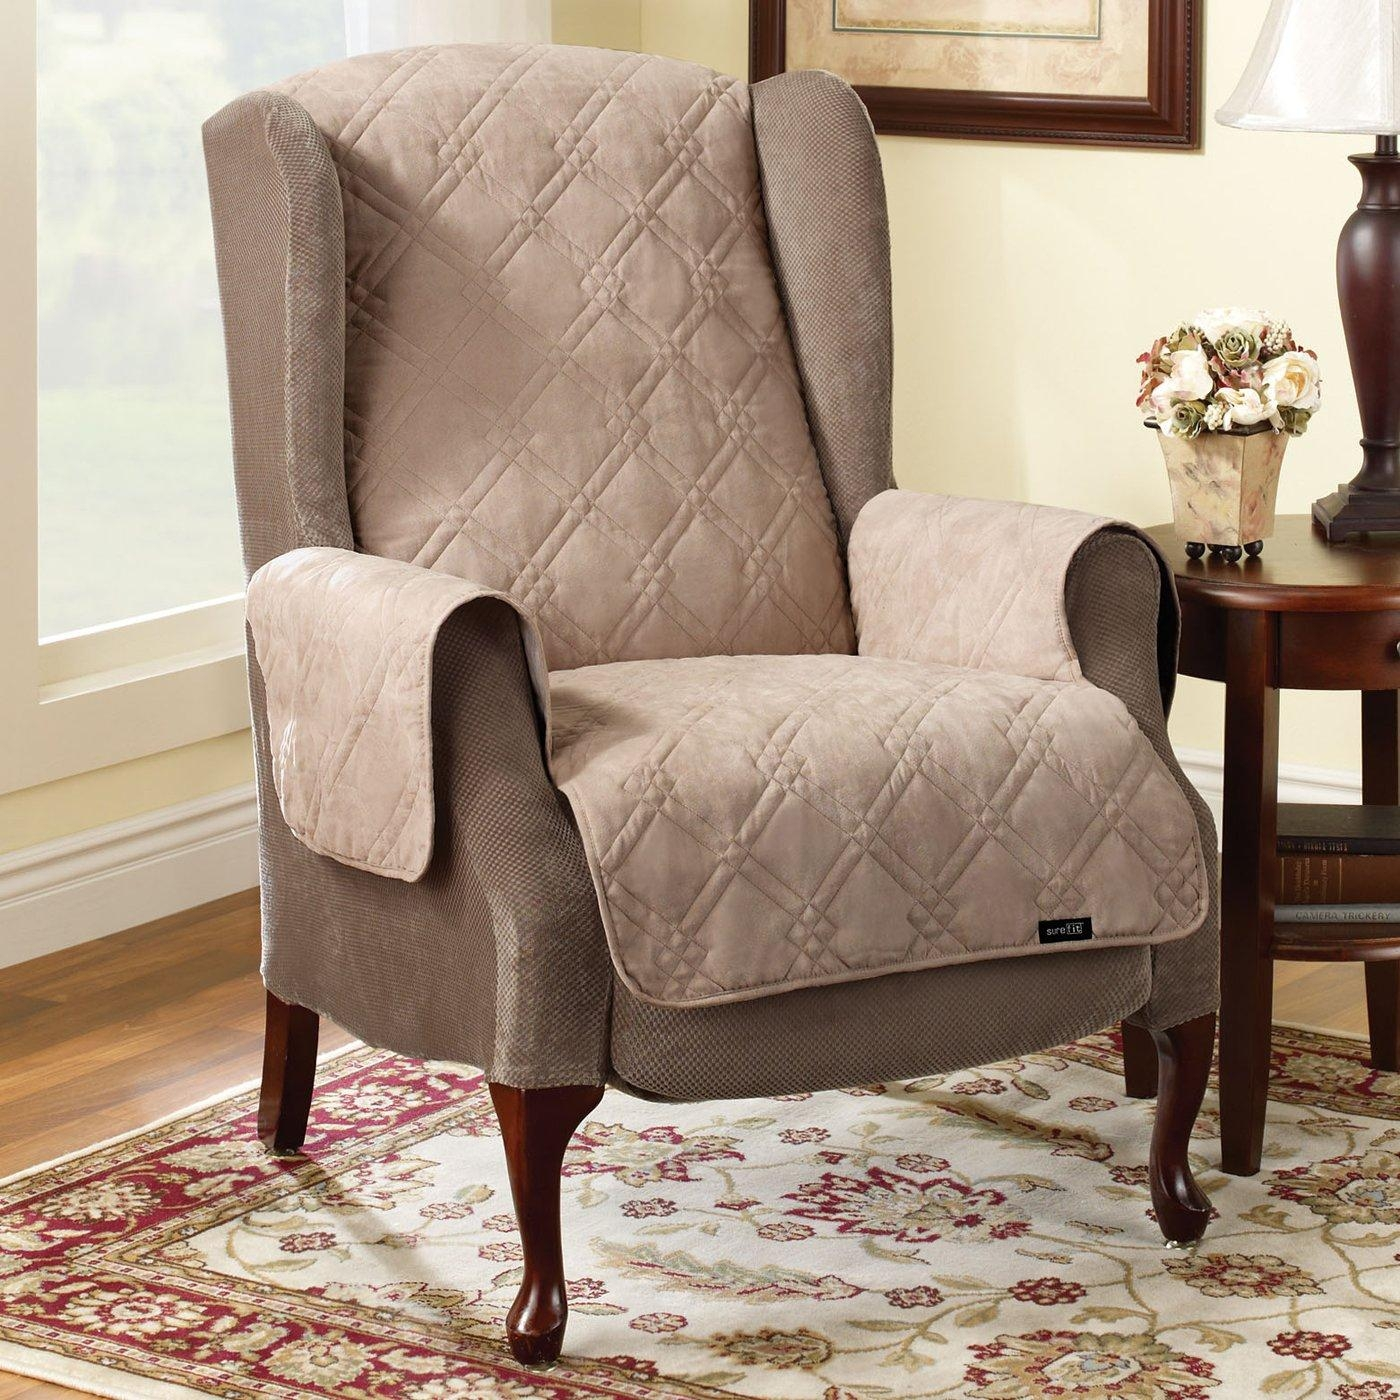 Interior Design Sure Fit® Stretch Pearson Recliner Slipcover Regarding Stretch Covers For Recliners (Image 12 of 20)